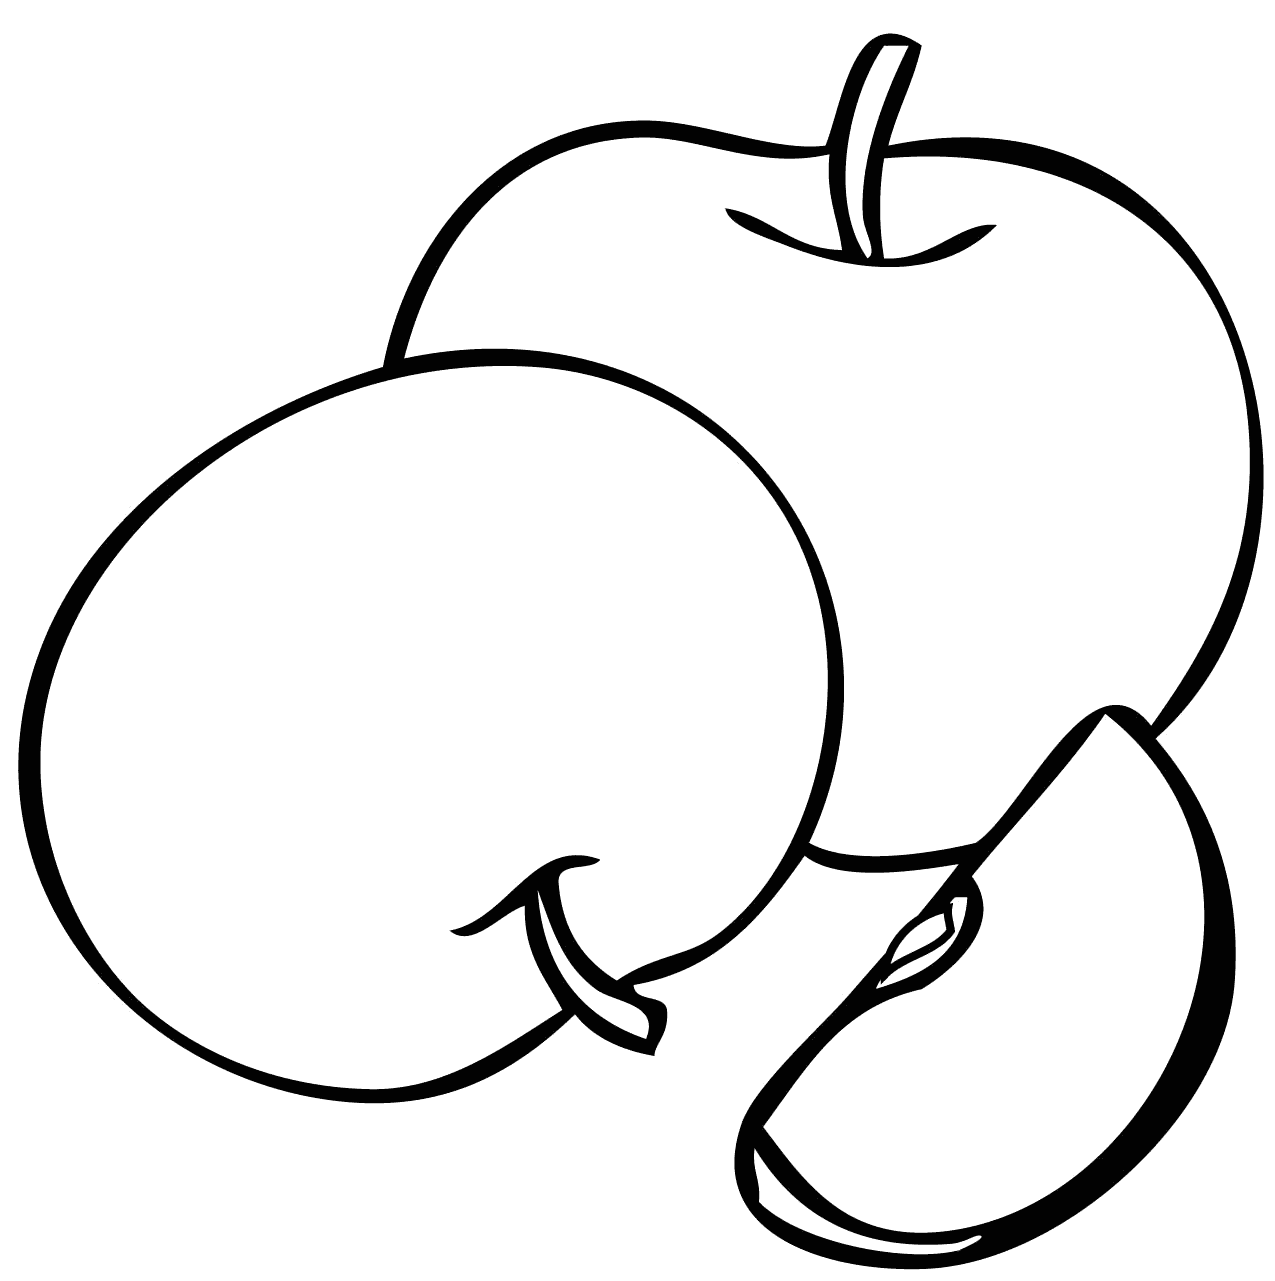 Easy Apples Coloring Pages for Kids